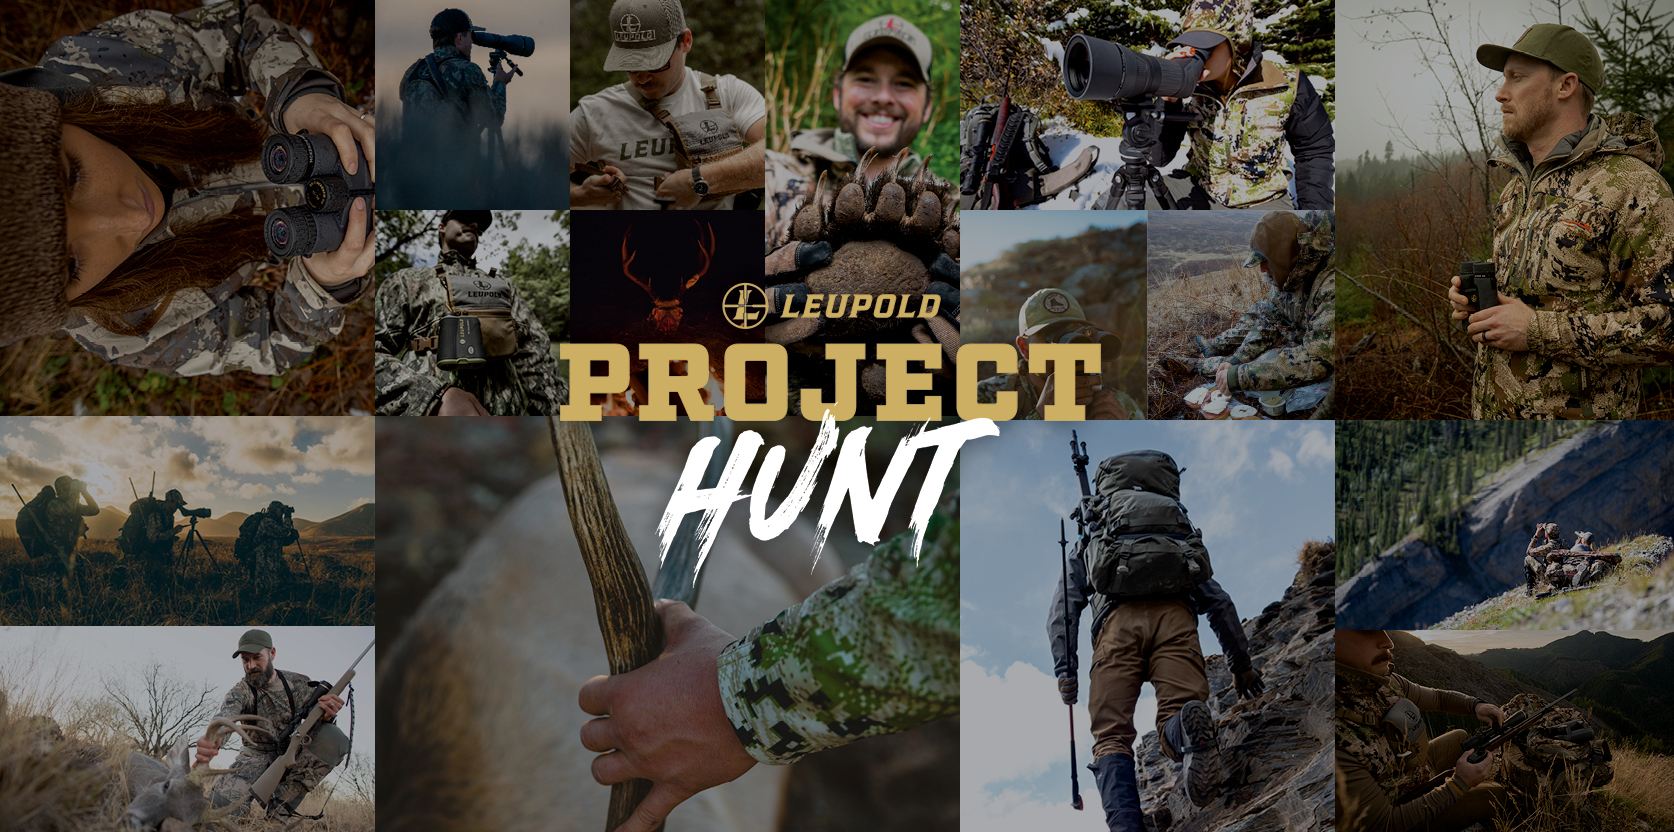 Your Tag, Your Hunt, Your Story: Leupold Announces 'Project Hunt' Contest